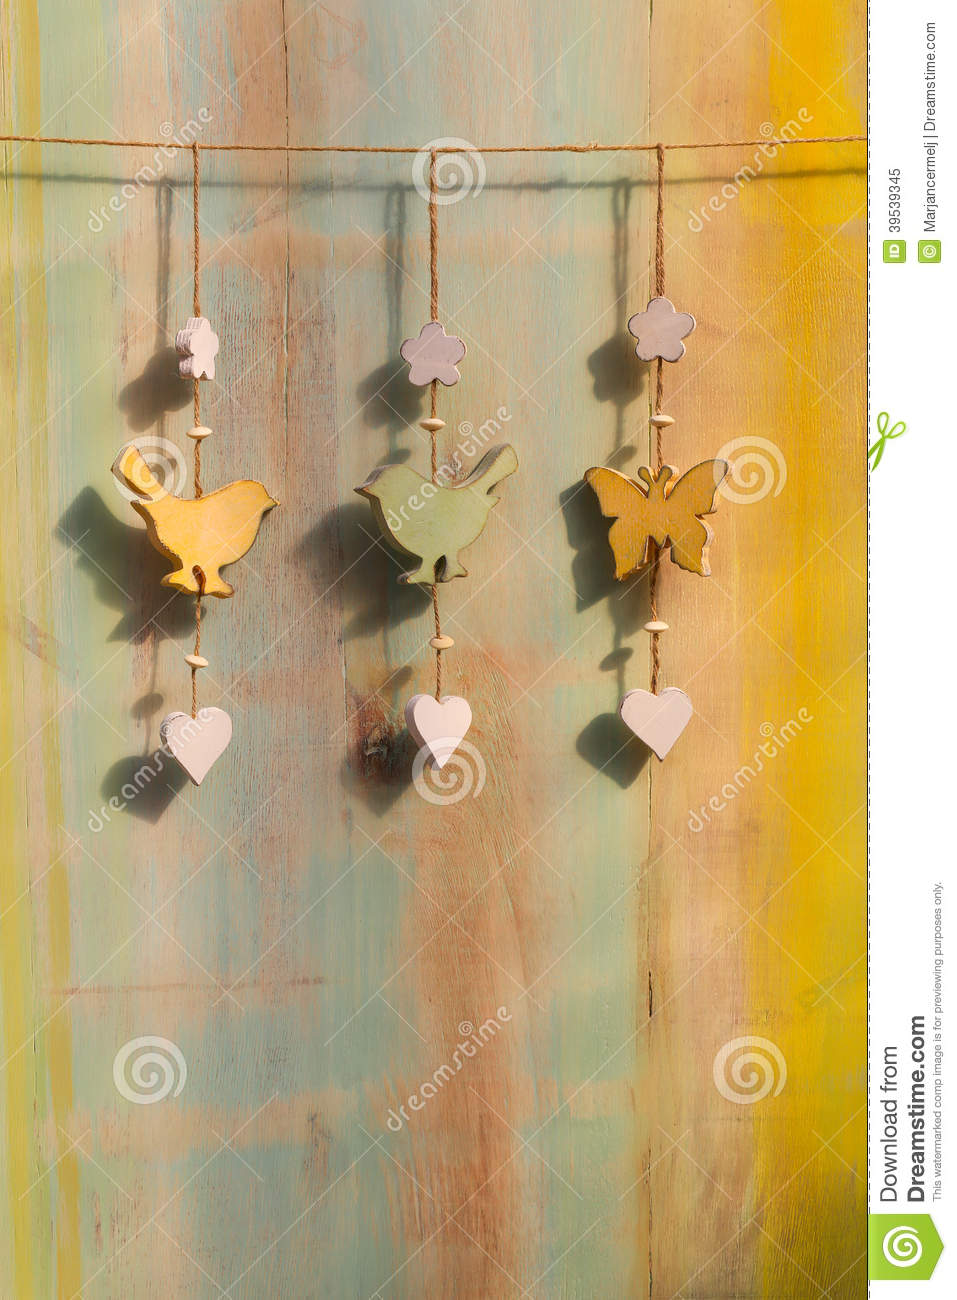 Hanging decor wood on string bird butterfly stock photo   image ...